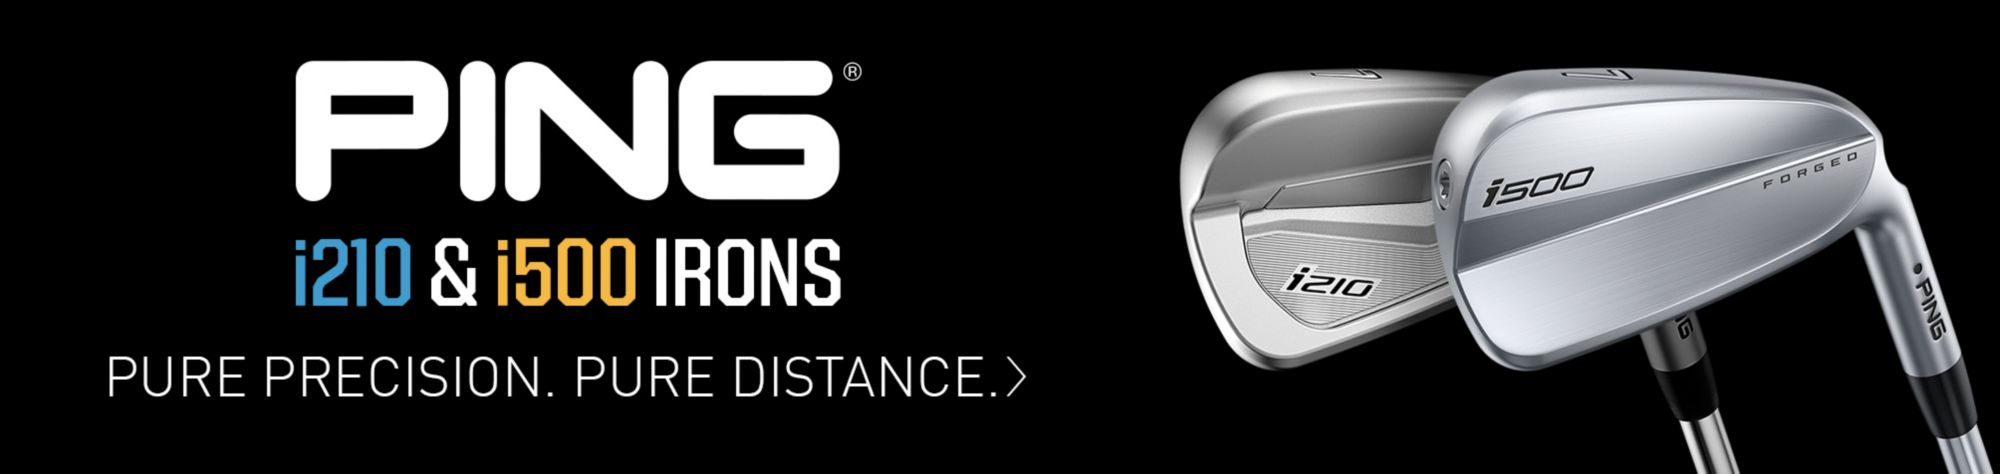 i210 and i500 Irons from PING Shop Now